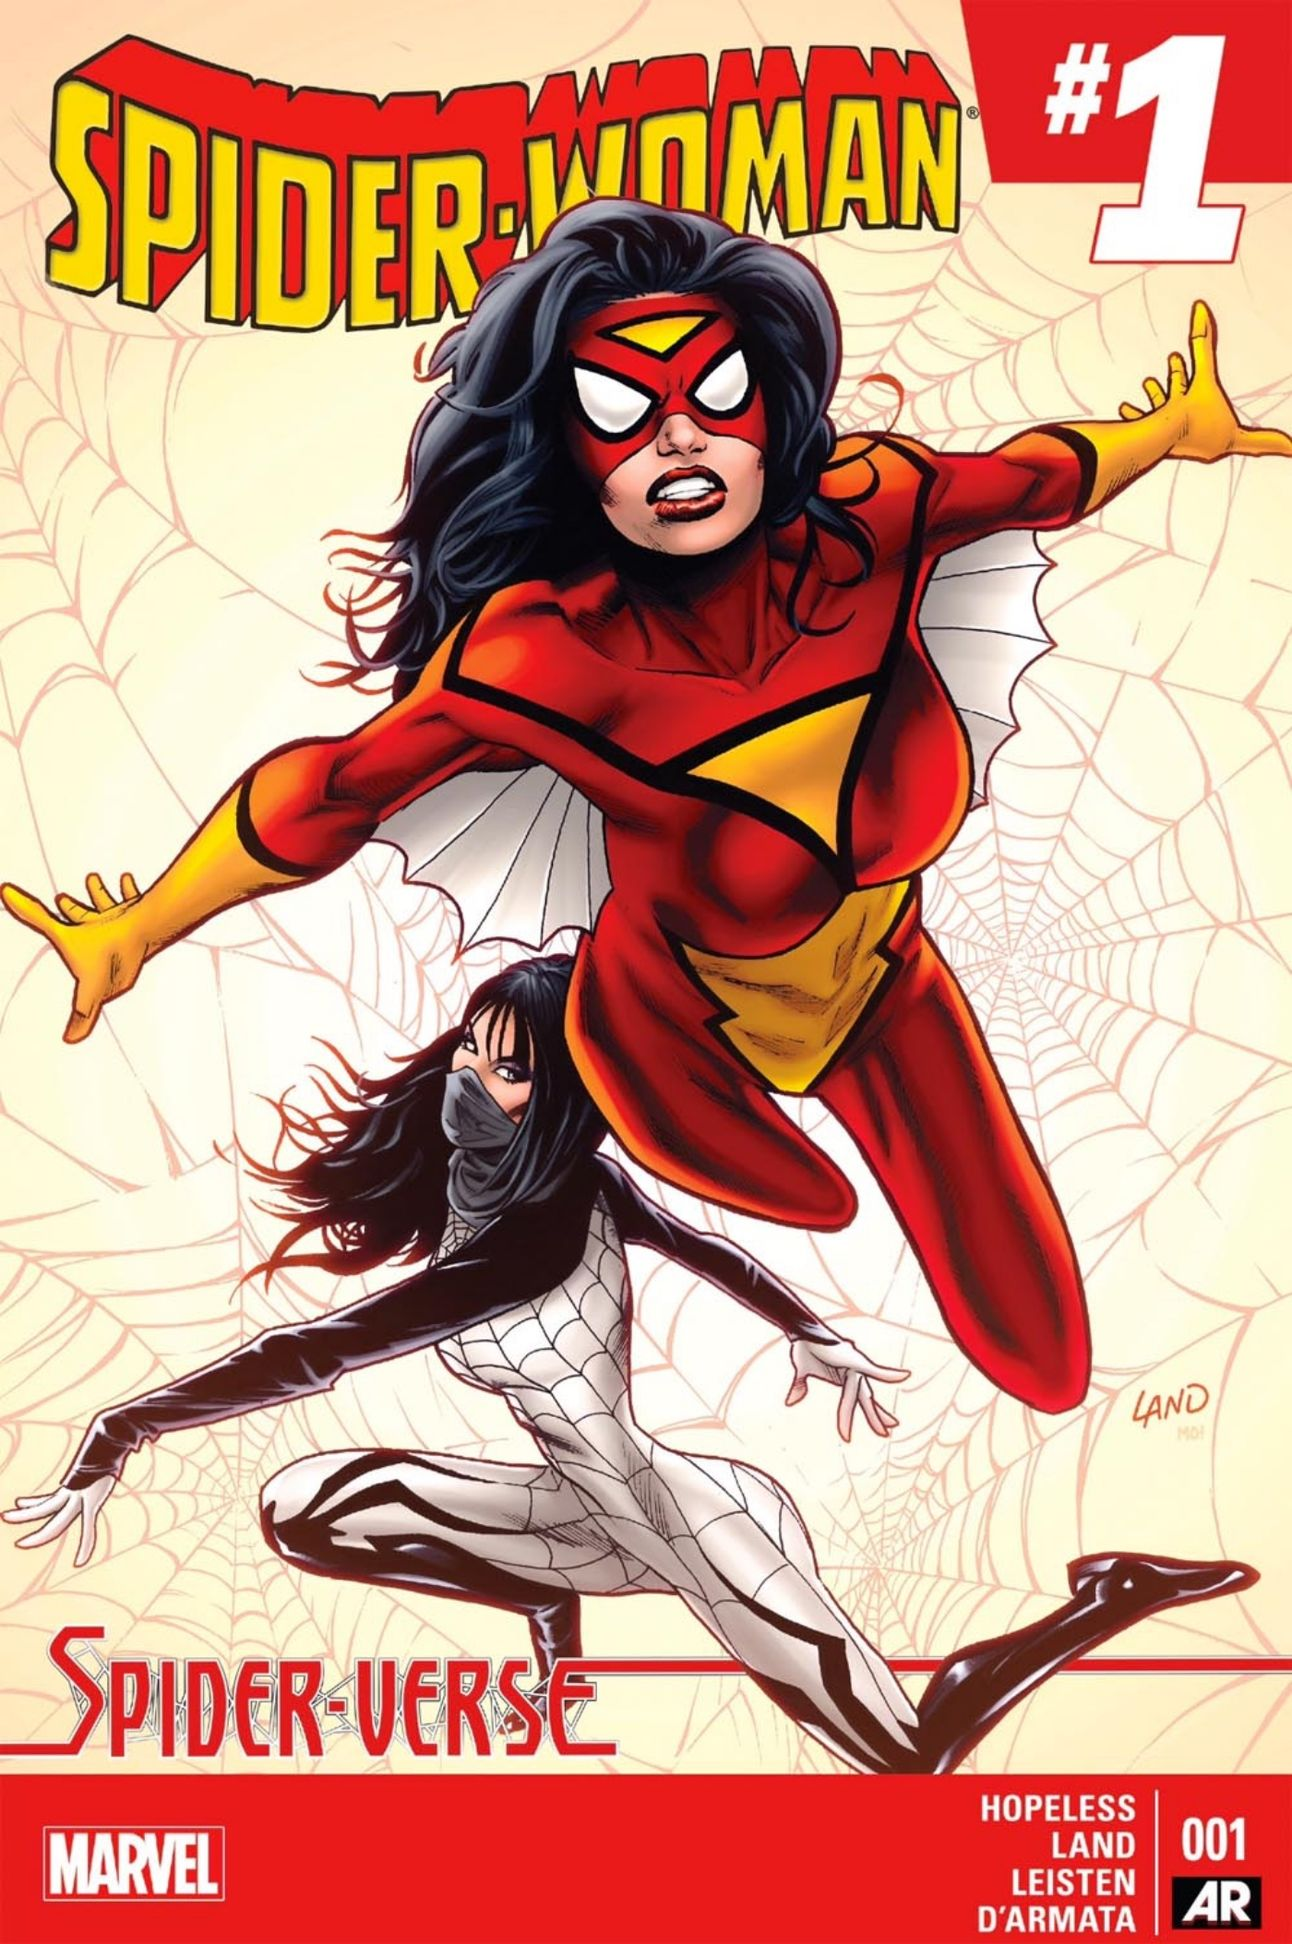 spider-woman-1-cover-art.jpg